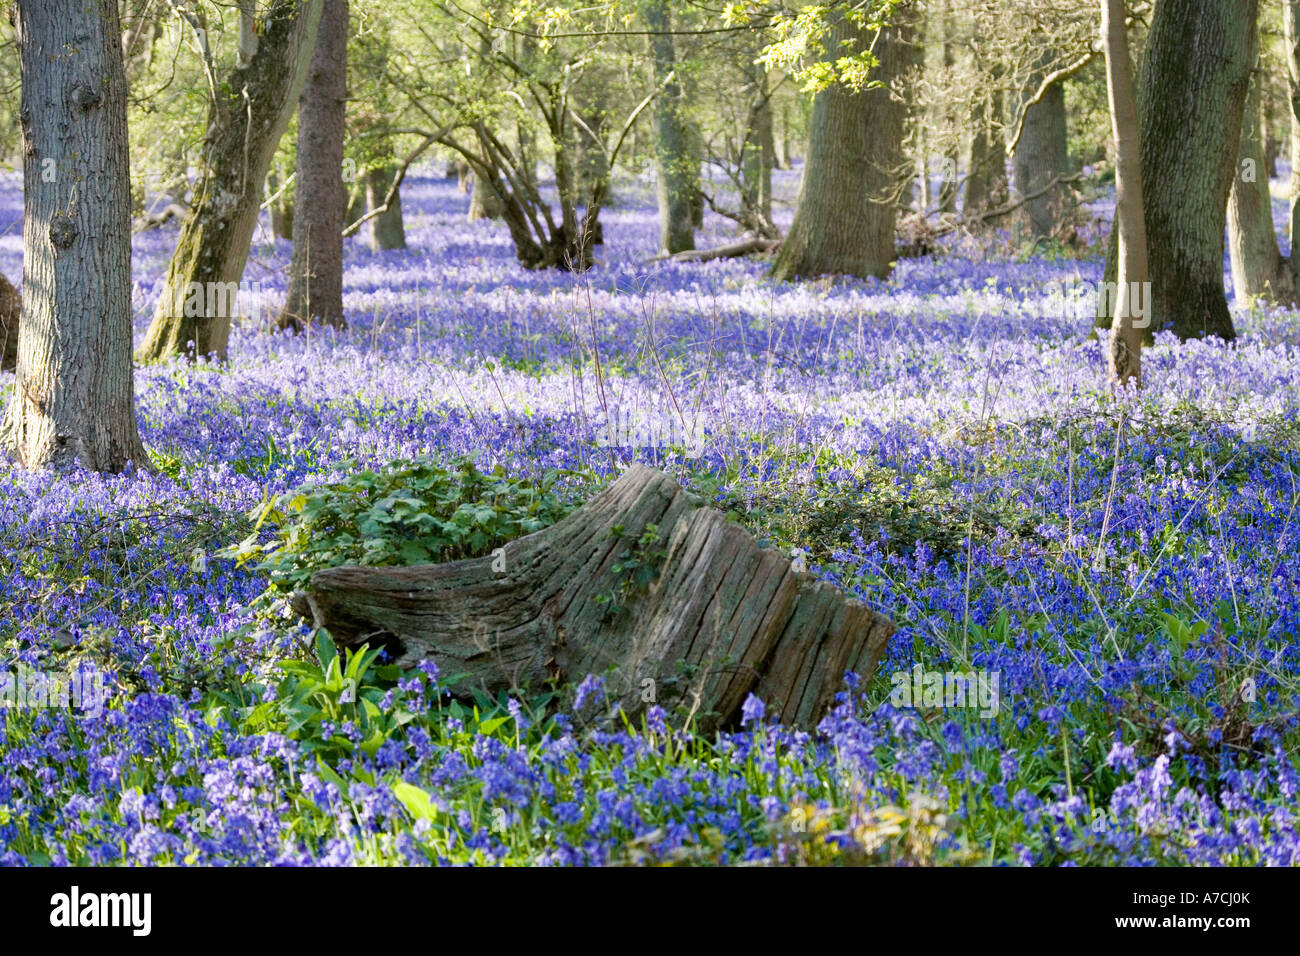 Bluebells carpet oak woodland, Hambleden, Bucks., UK. - Stock Image